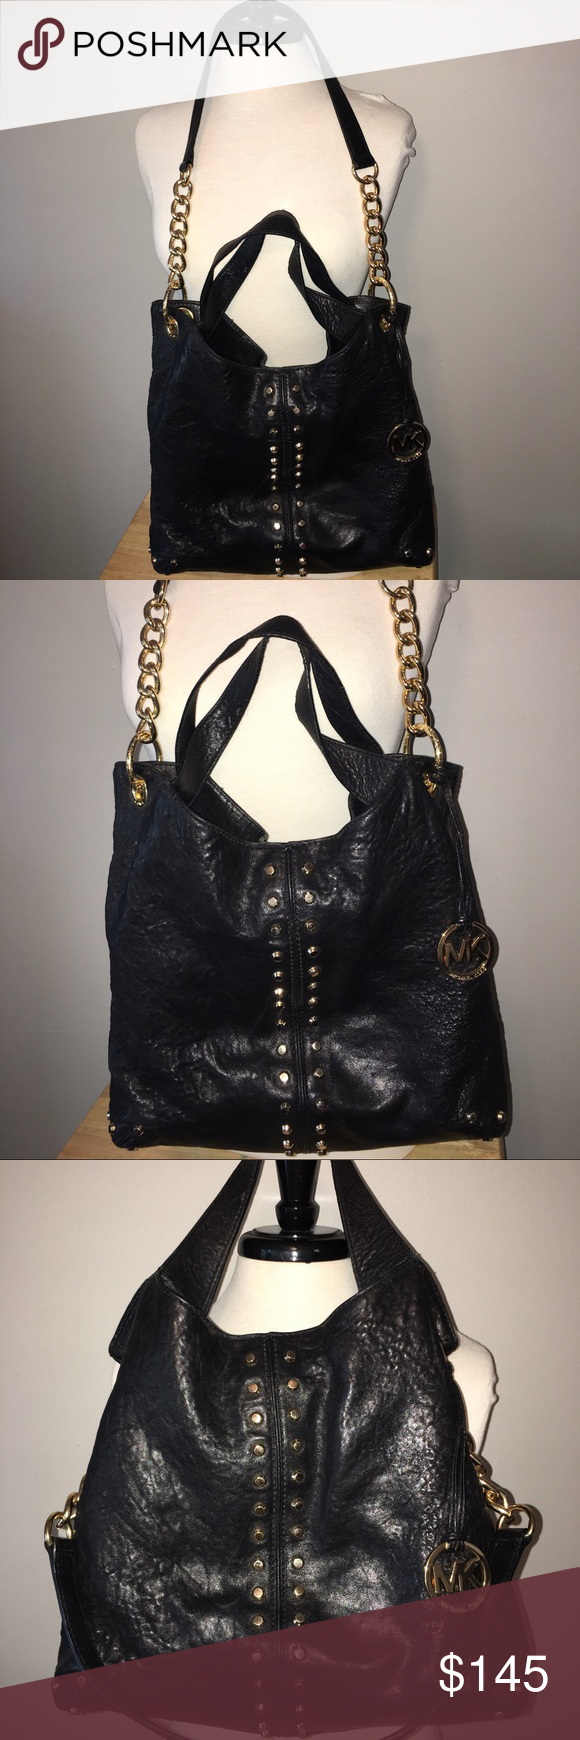 1c4acff88bd9 Gorgeous and Real Michael Kors Black Leather purse Gorgeous and Real Michael  Kors purse, code AP-1208, genuine black washed leather, gold hardware, ...